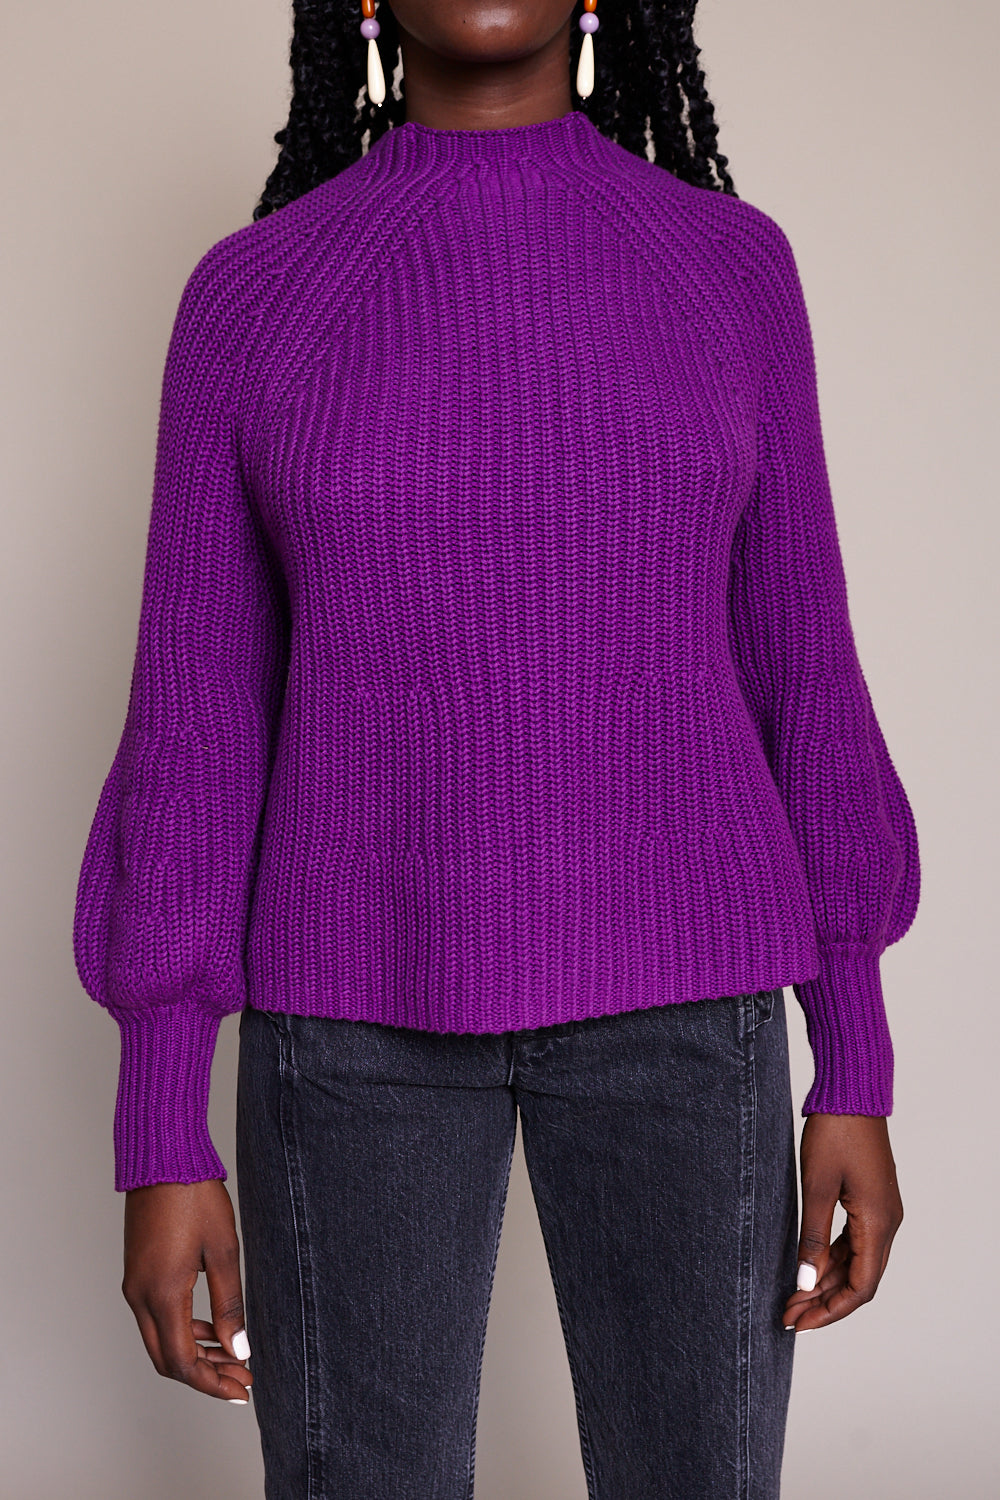 Sequoia Mock Neck Sweater in Plum